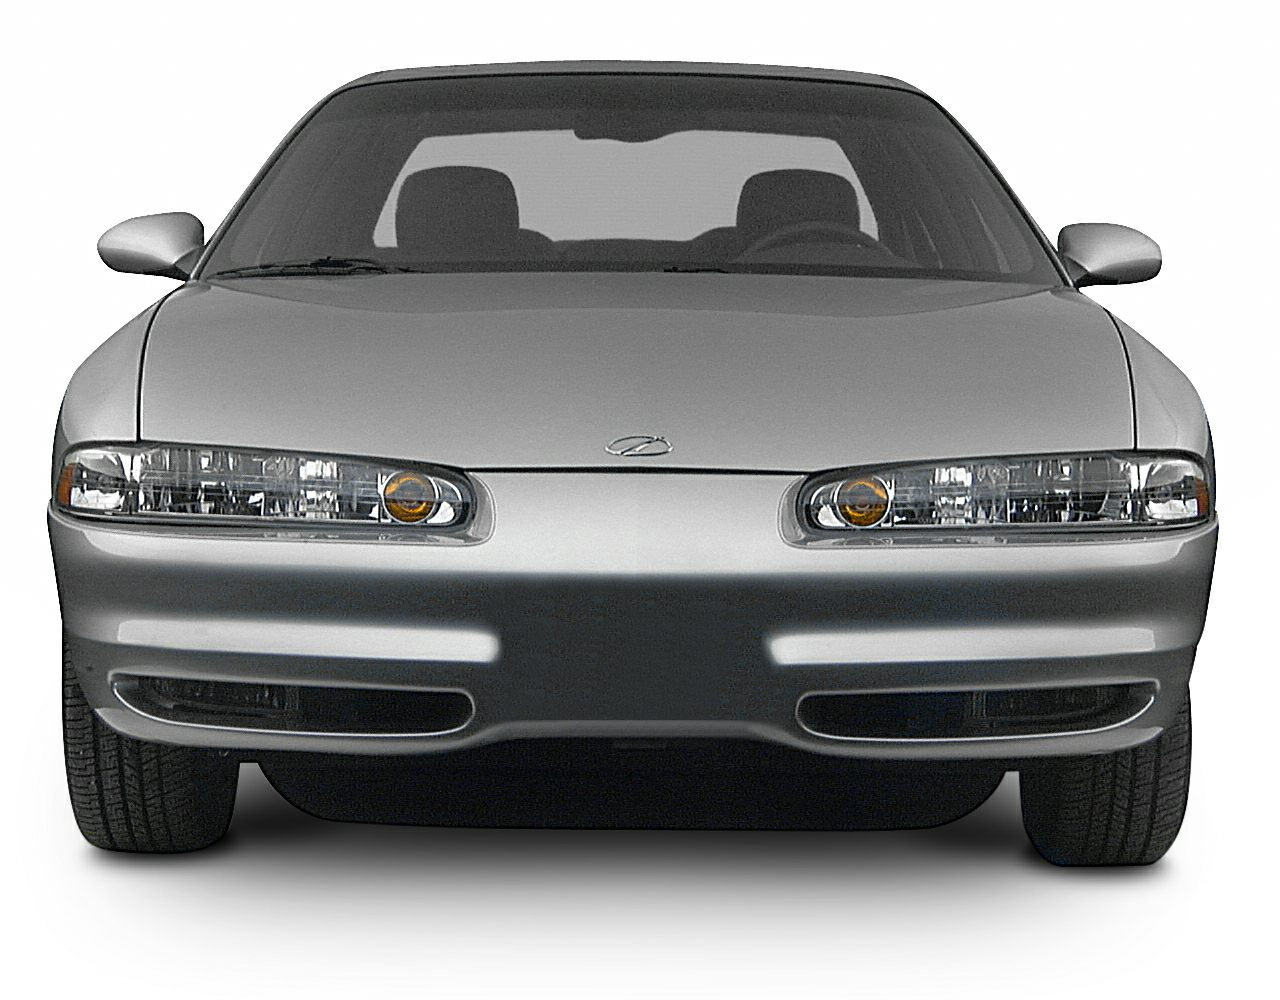 2000 Oldsmobile Intrigue Exterior Photo